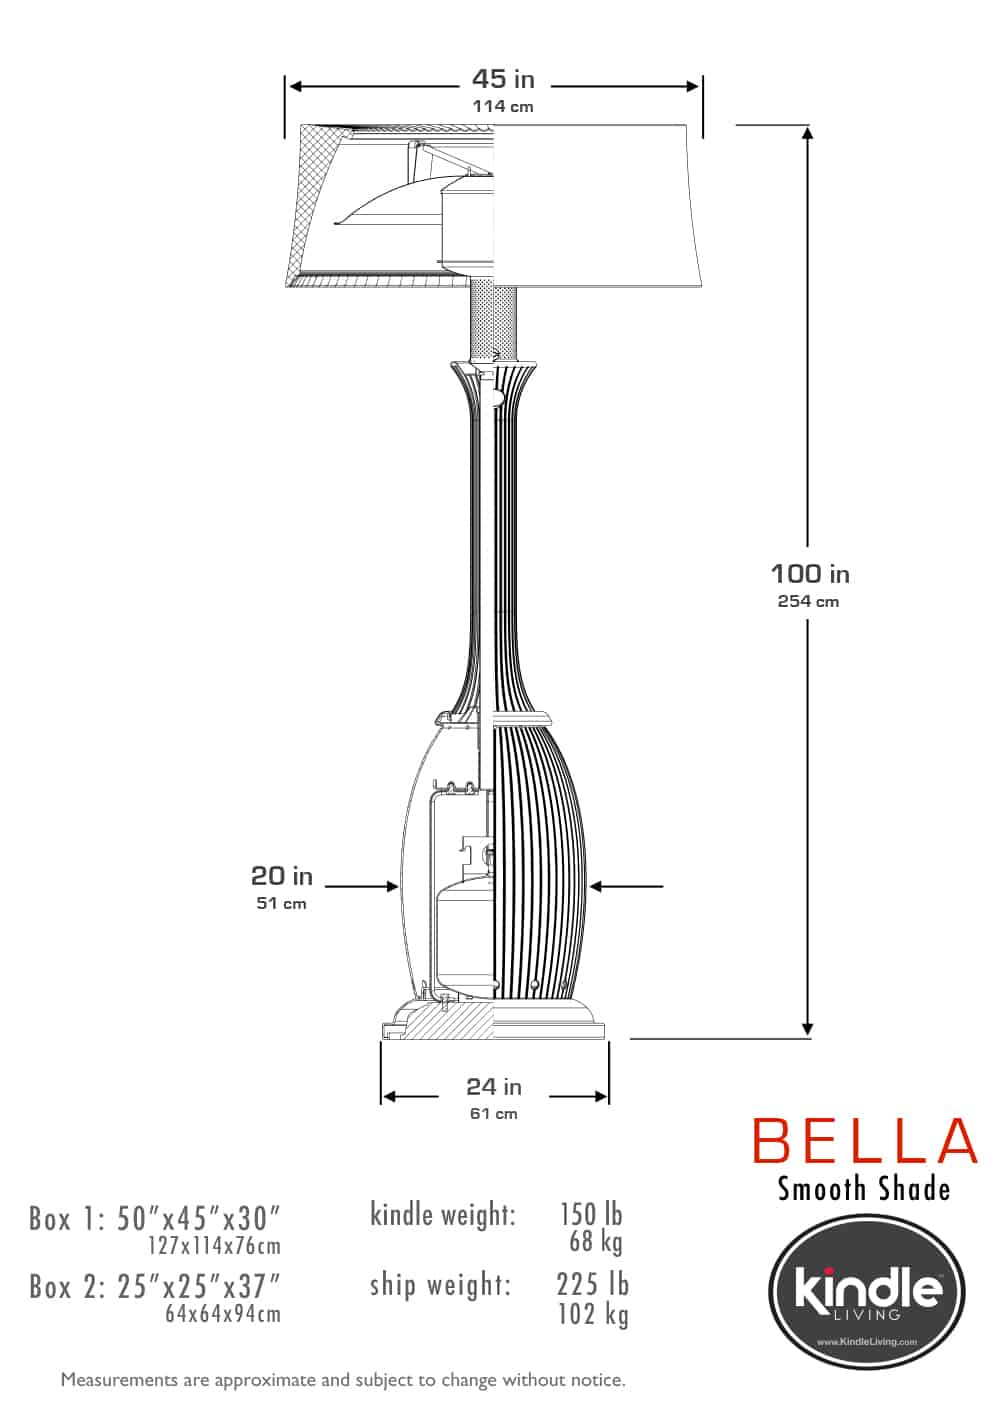 Design Accents Heater Diagram Detailed Wiring Diagrams For A Kindle Bella Los Angeles Designers Of Giant Decorative Heaters Lamps Ford Aside From